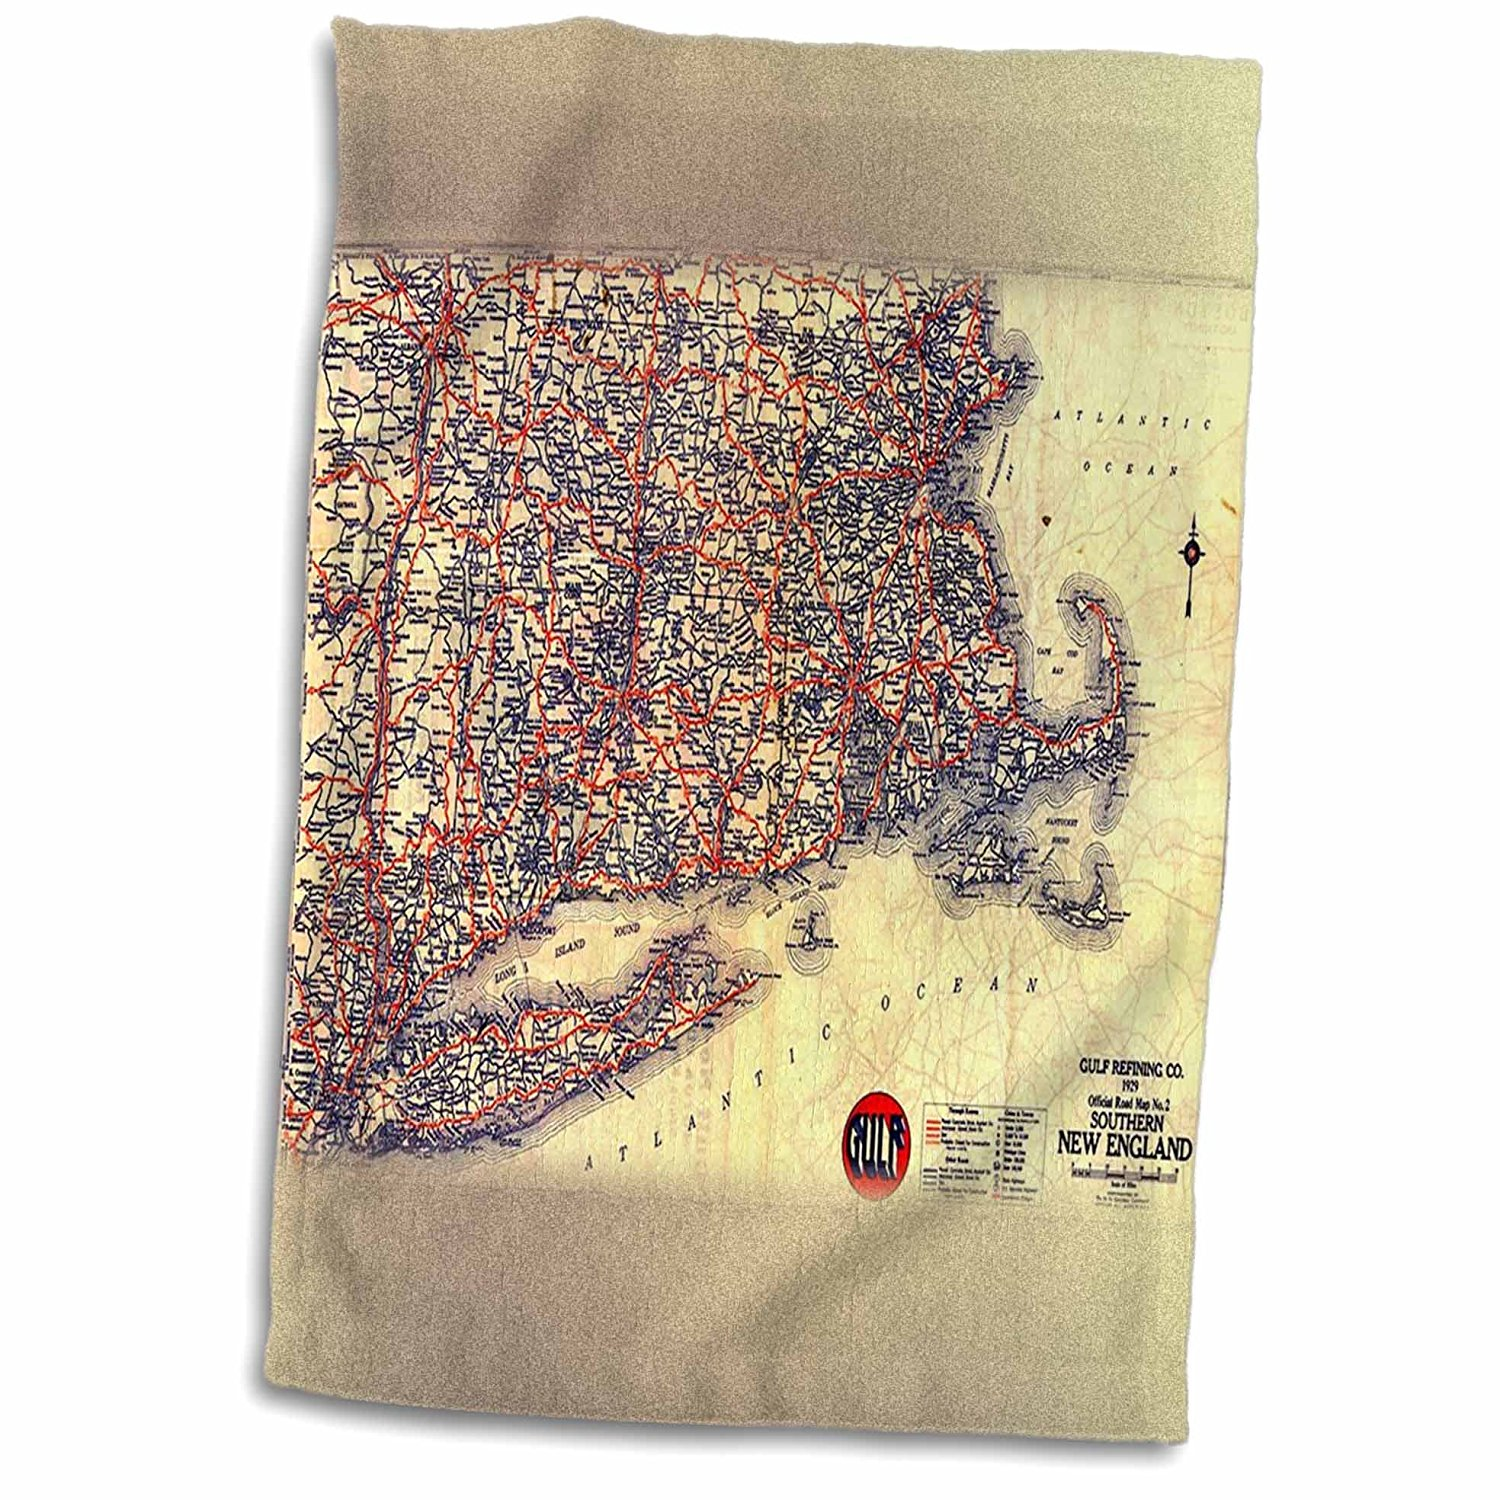 3dRose Florene Vintage Maps - image of vintage new England road map - 12x18 Towel (twl_171803_1)